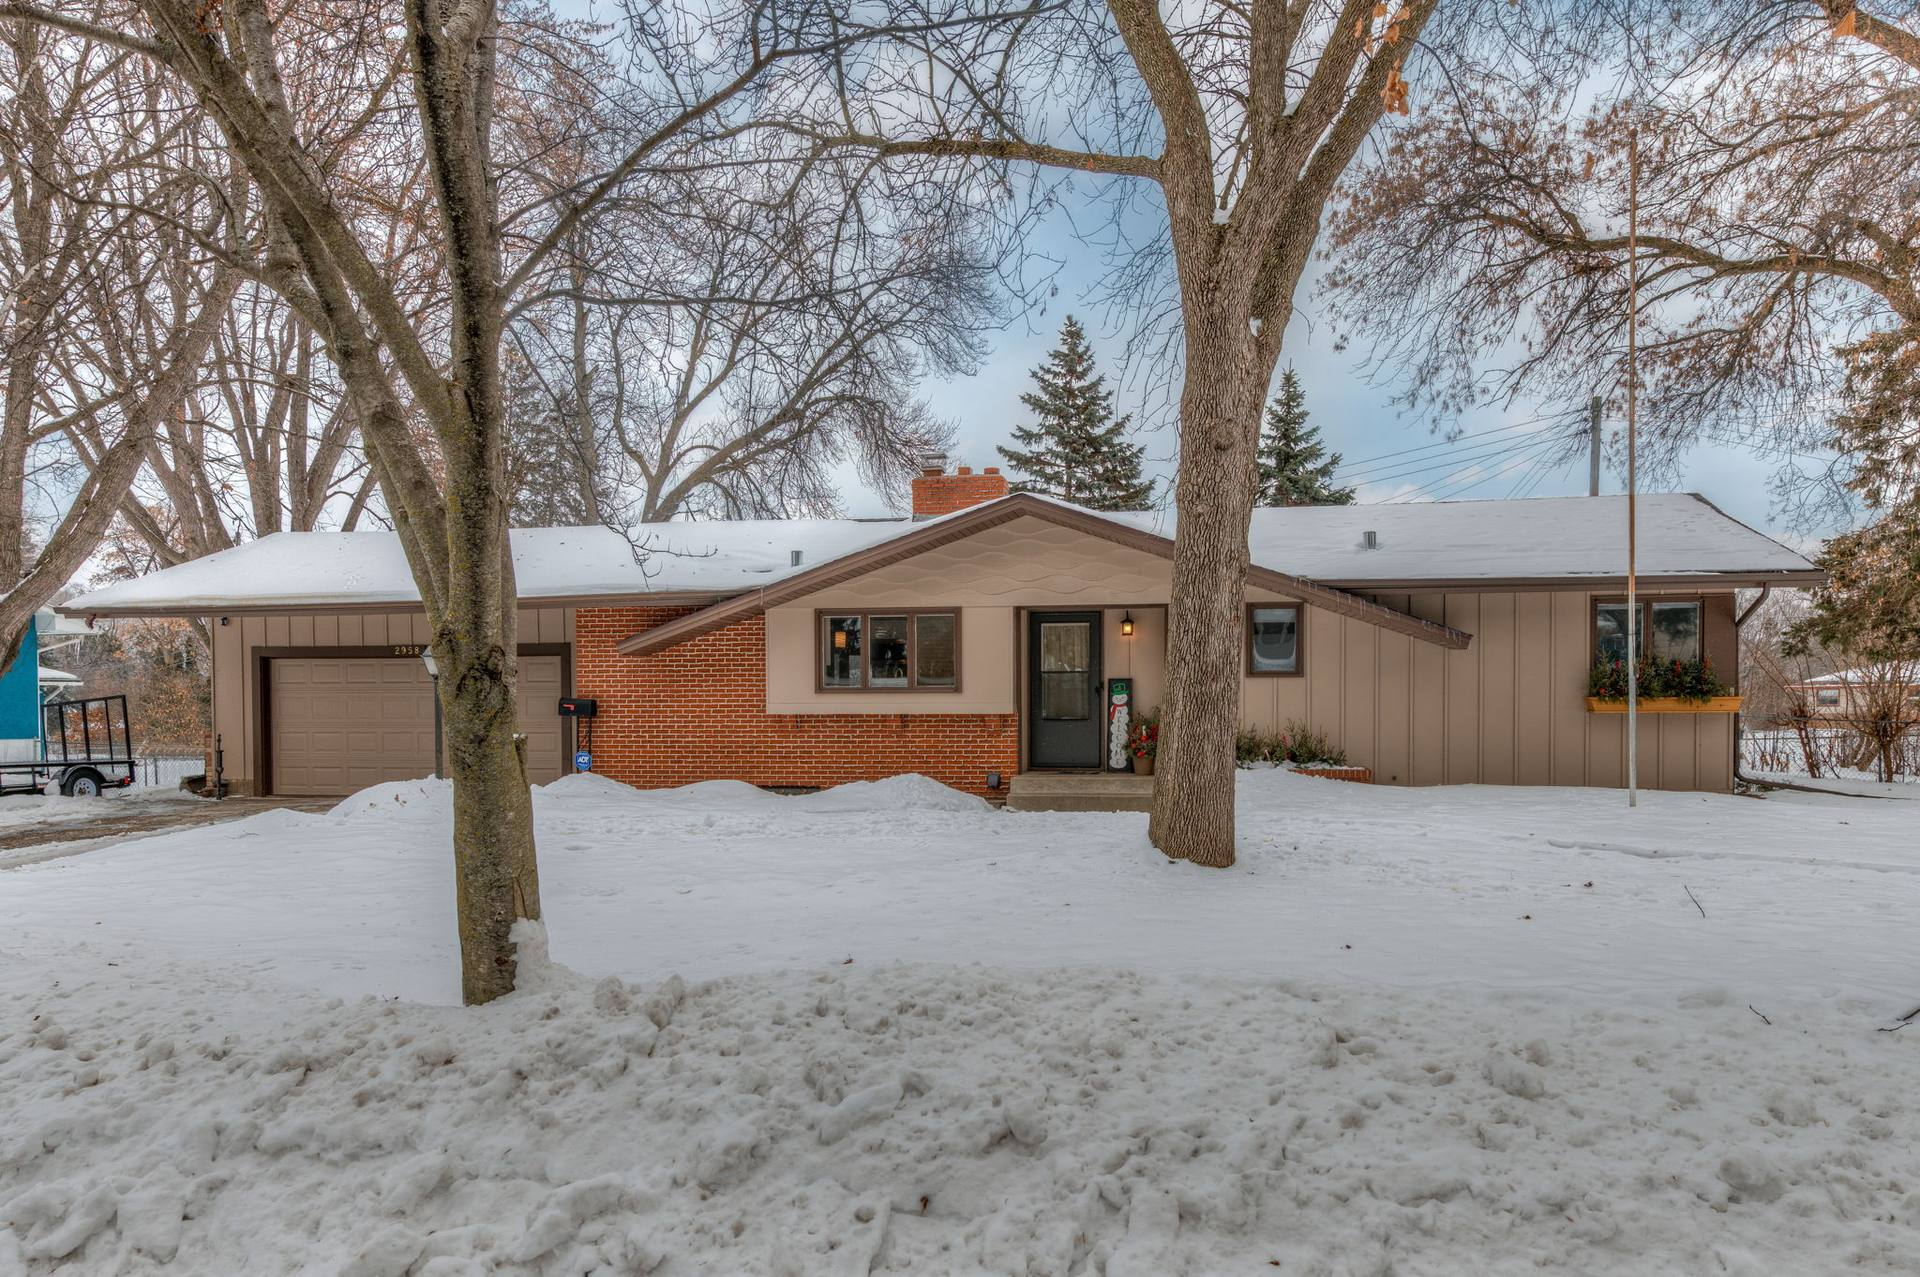 2958 Patton Rd, Shoreview, MN 55113, US